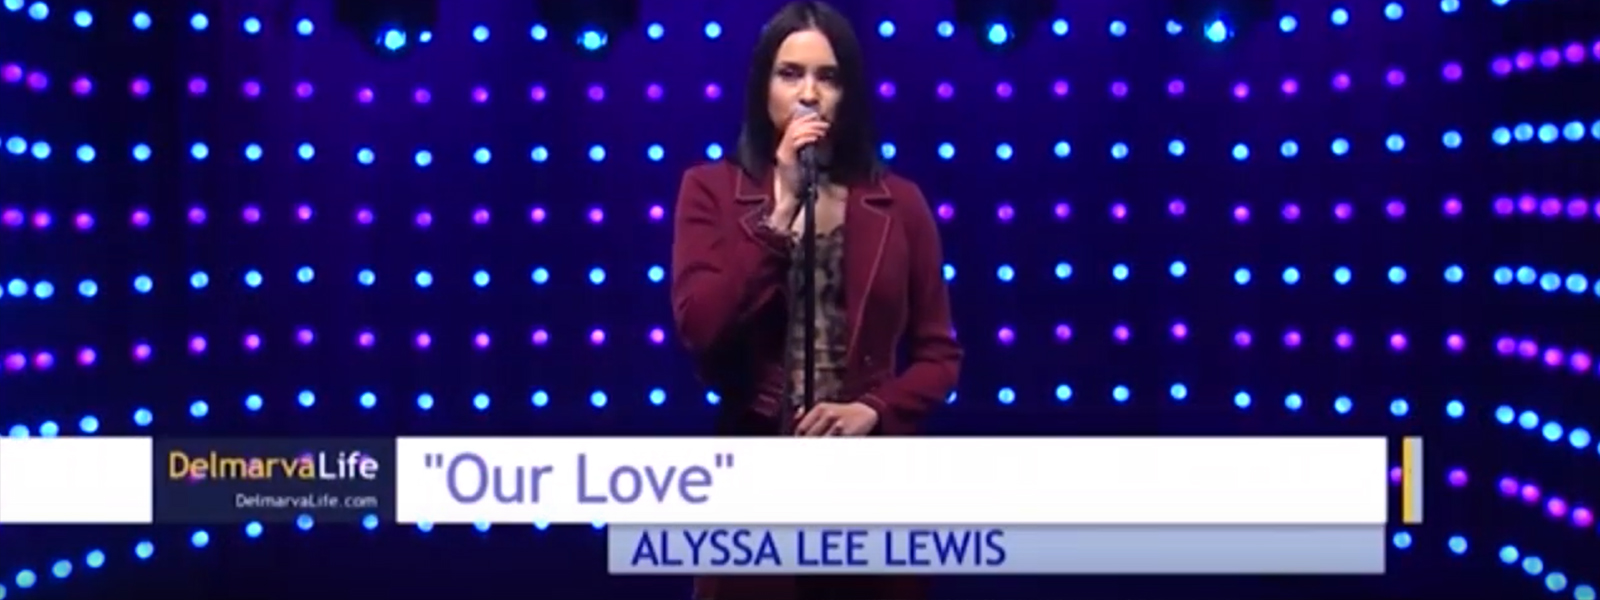 Alyssa Lee Lewis Performs On Delmarva Life Show - Realize